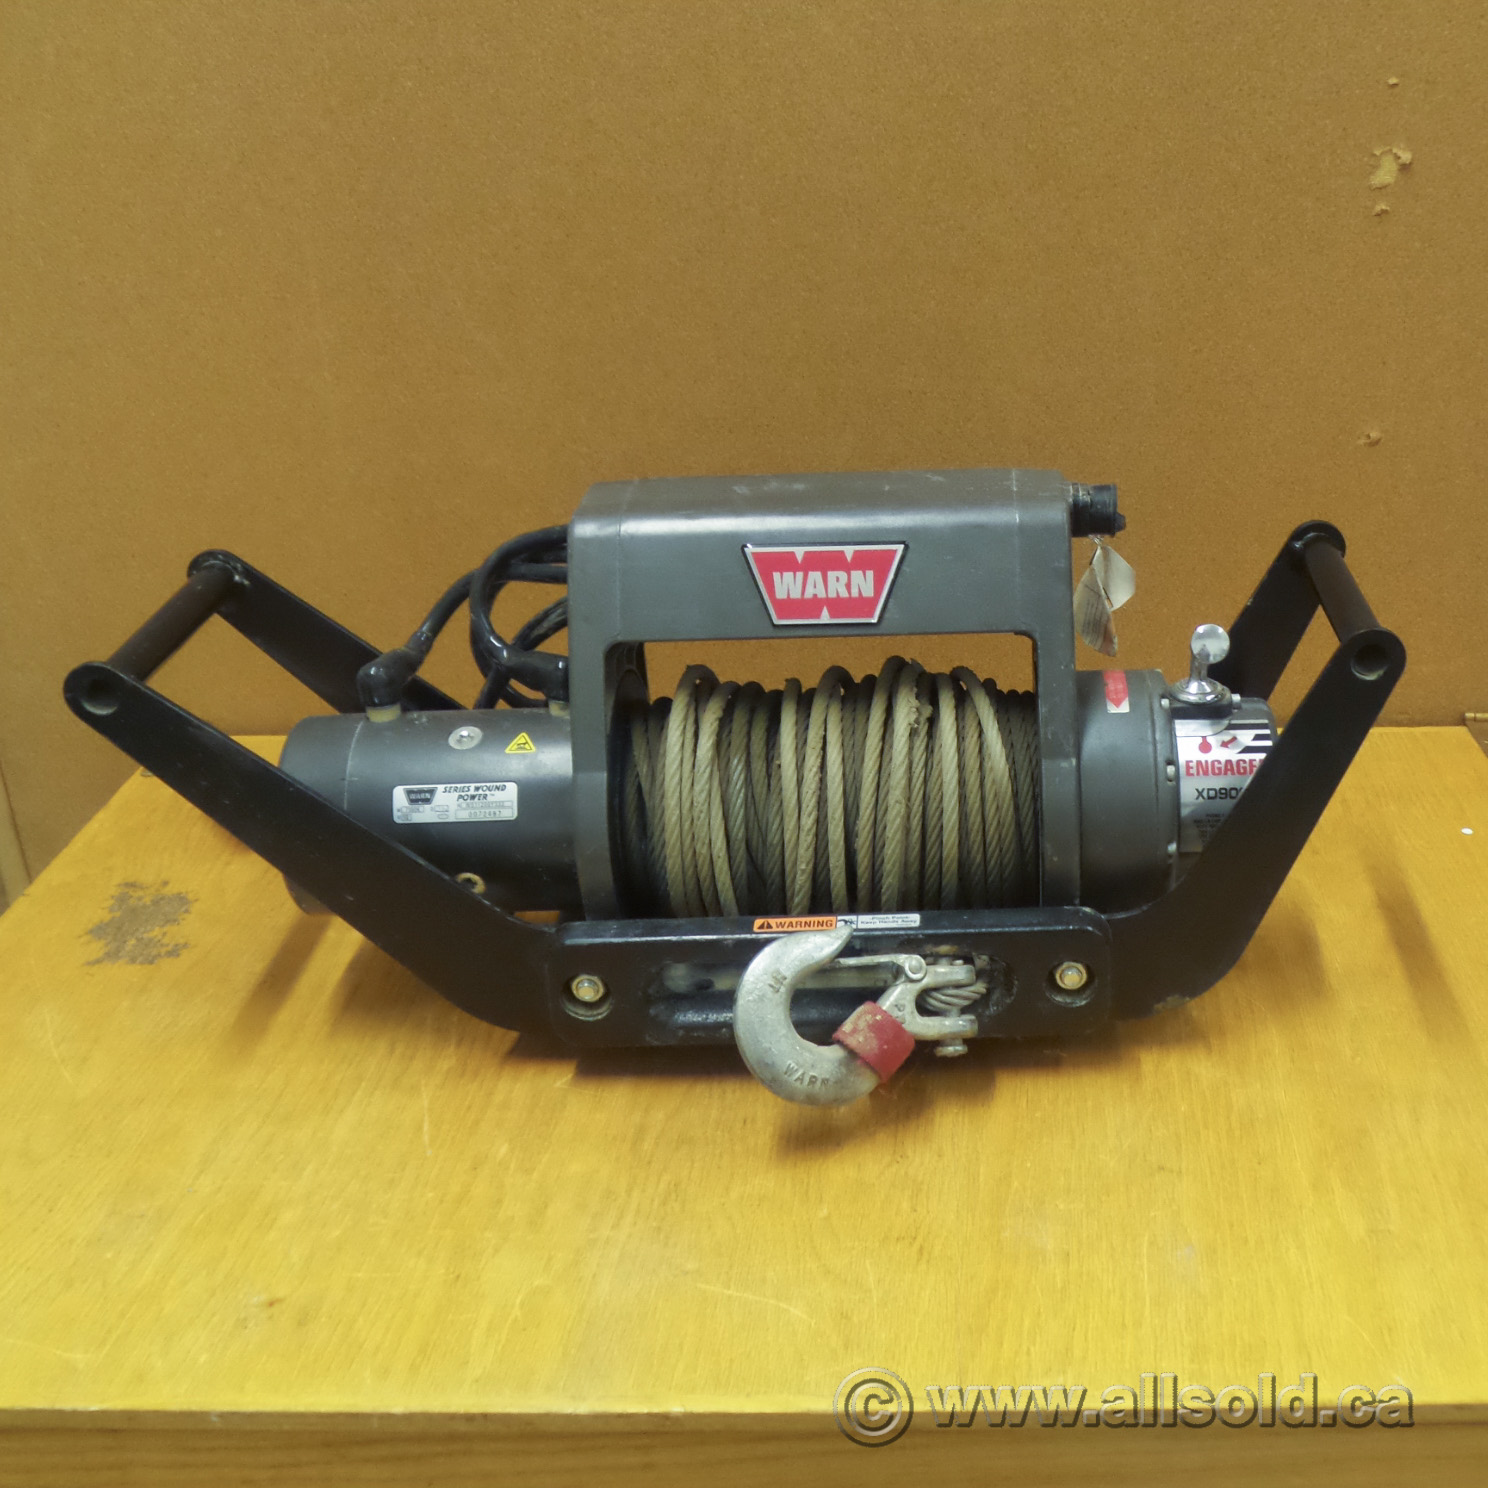 Warn Xd9000i Series Wound Multi Mount 9000 Lb Power Winch